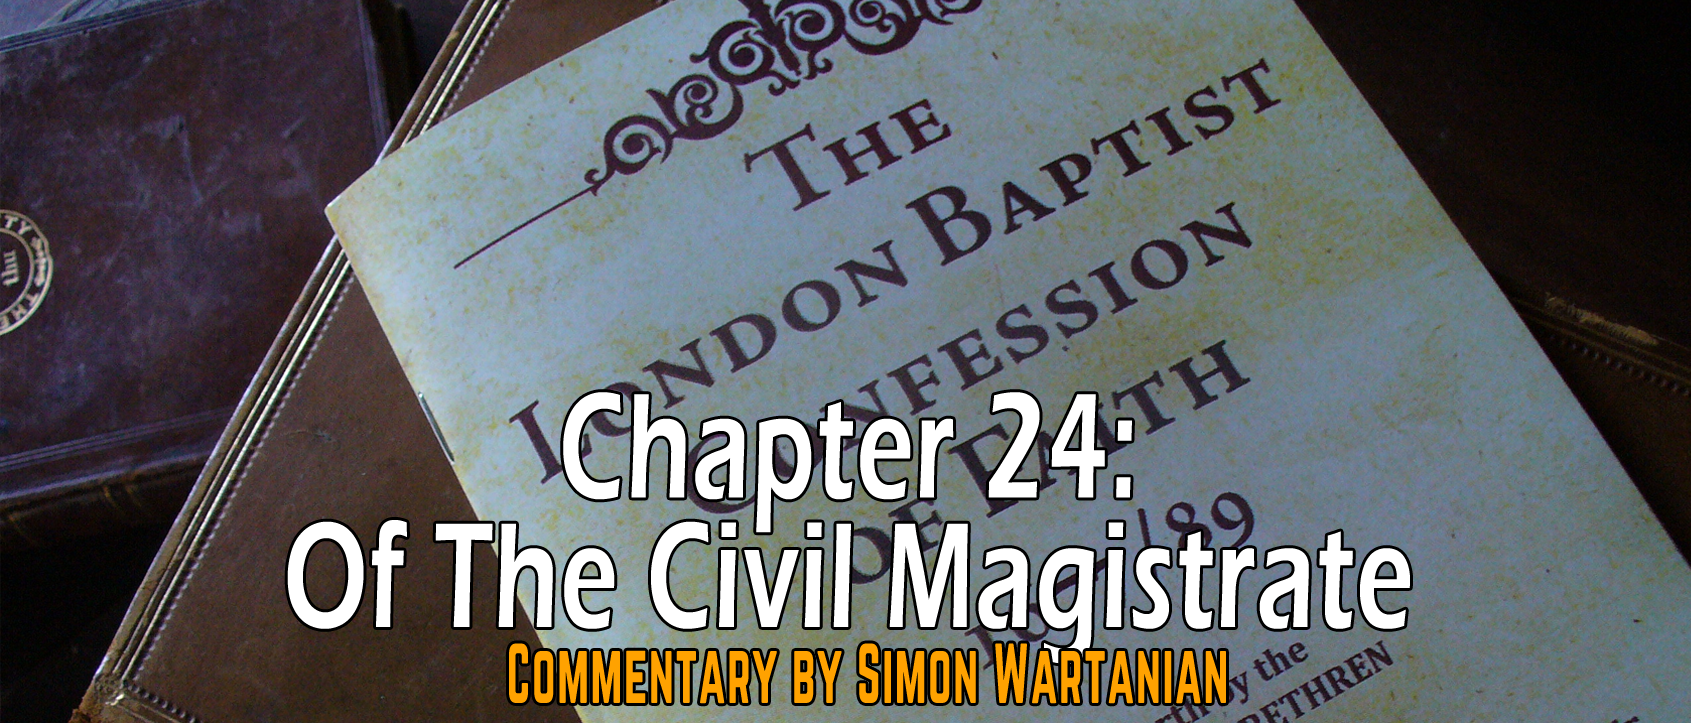 1689 Baptist Confession Chapter 24: Of the Civil Magistrate - Commentary